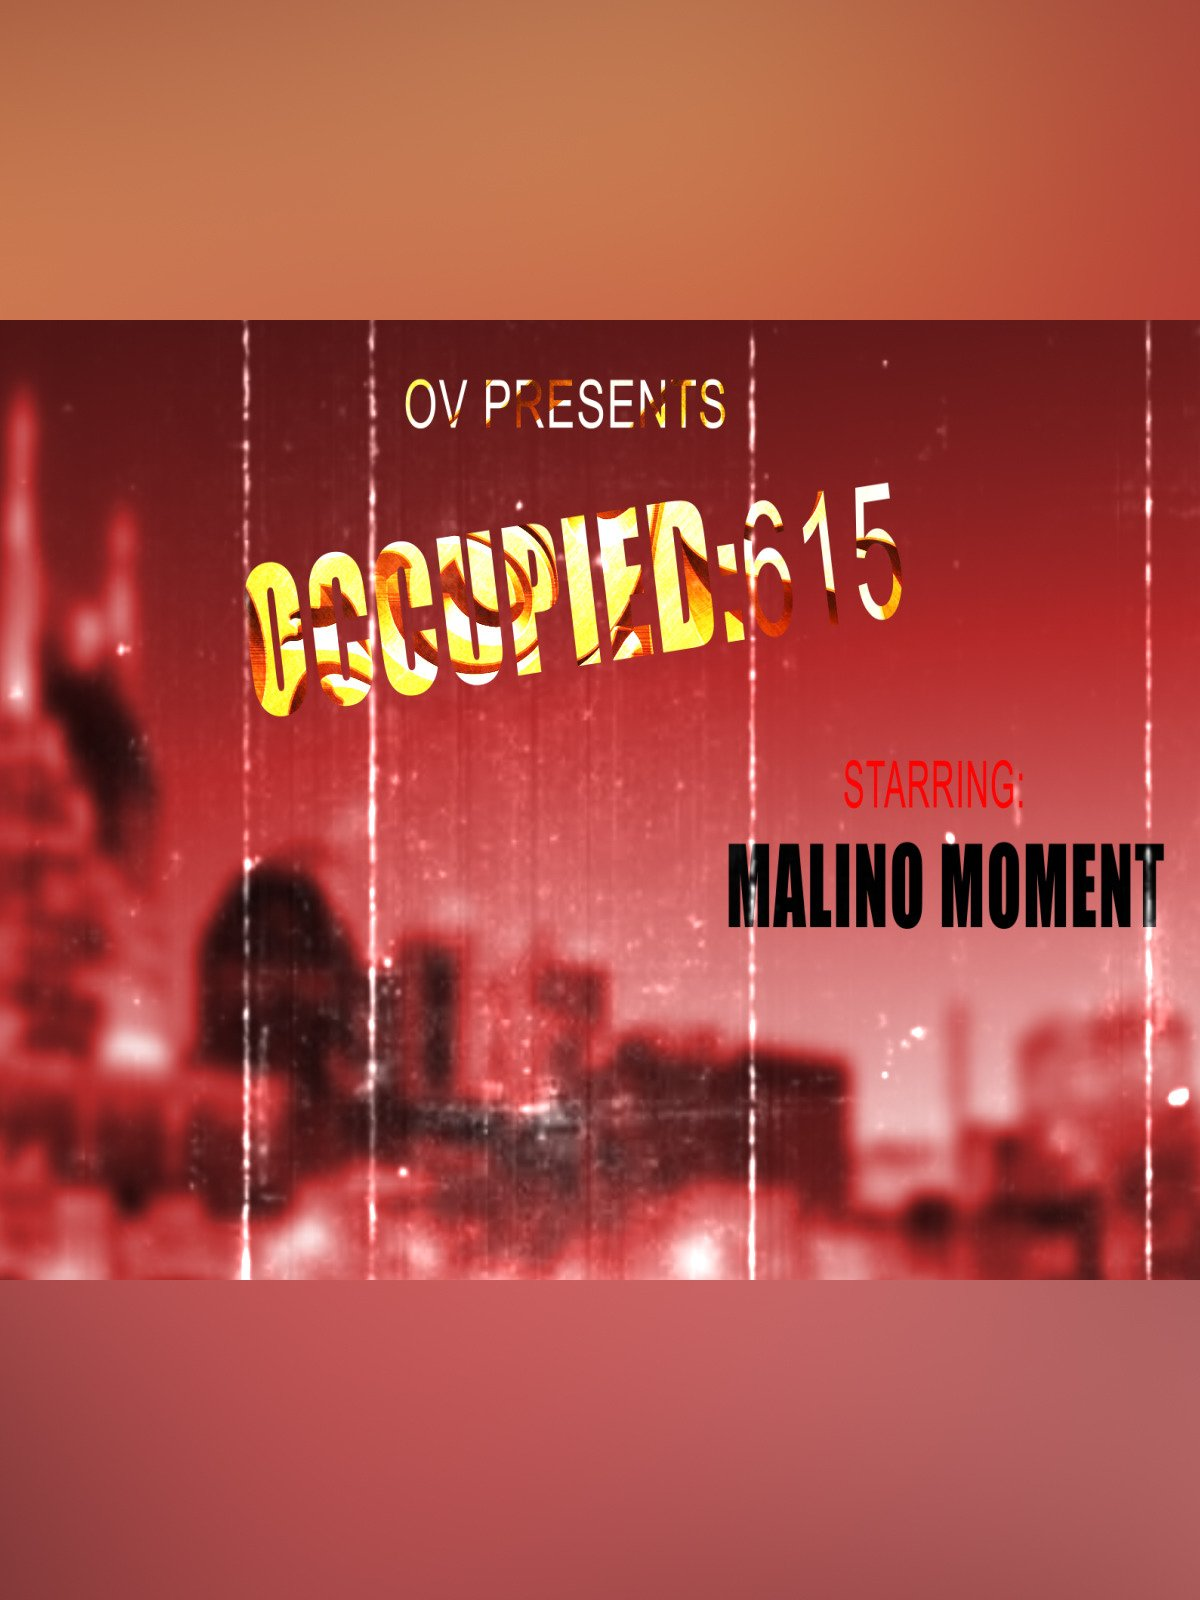 Occupied 615- Malino Moment